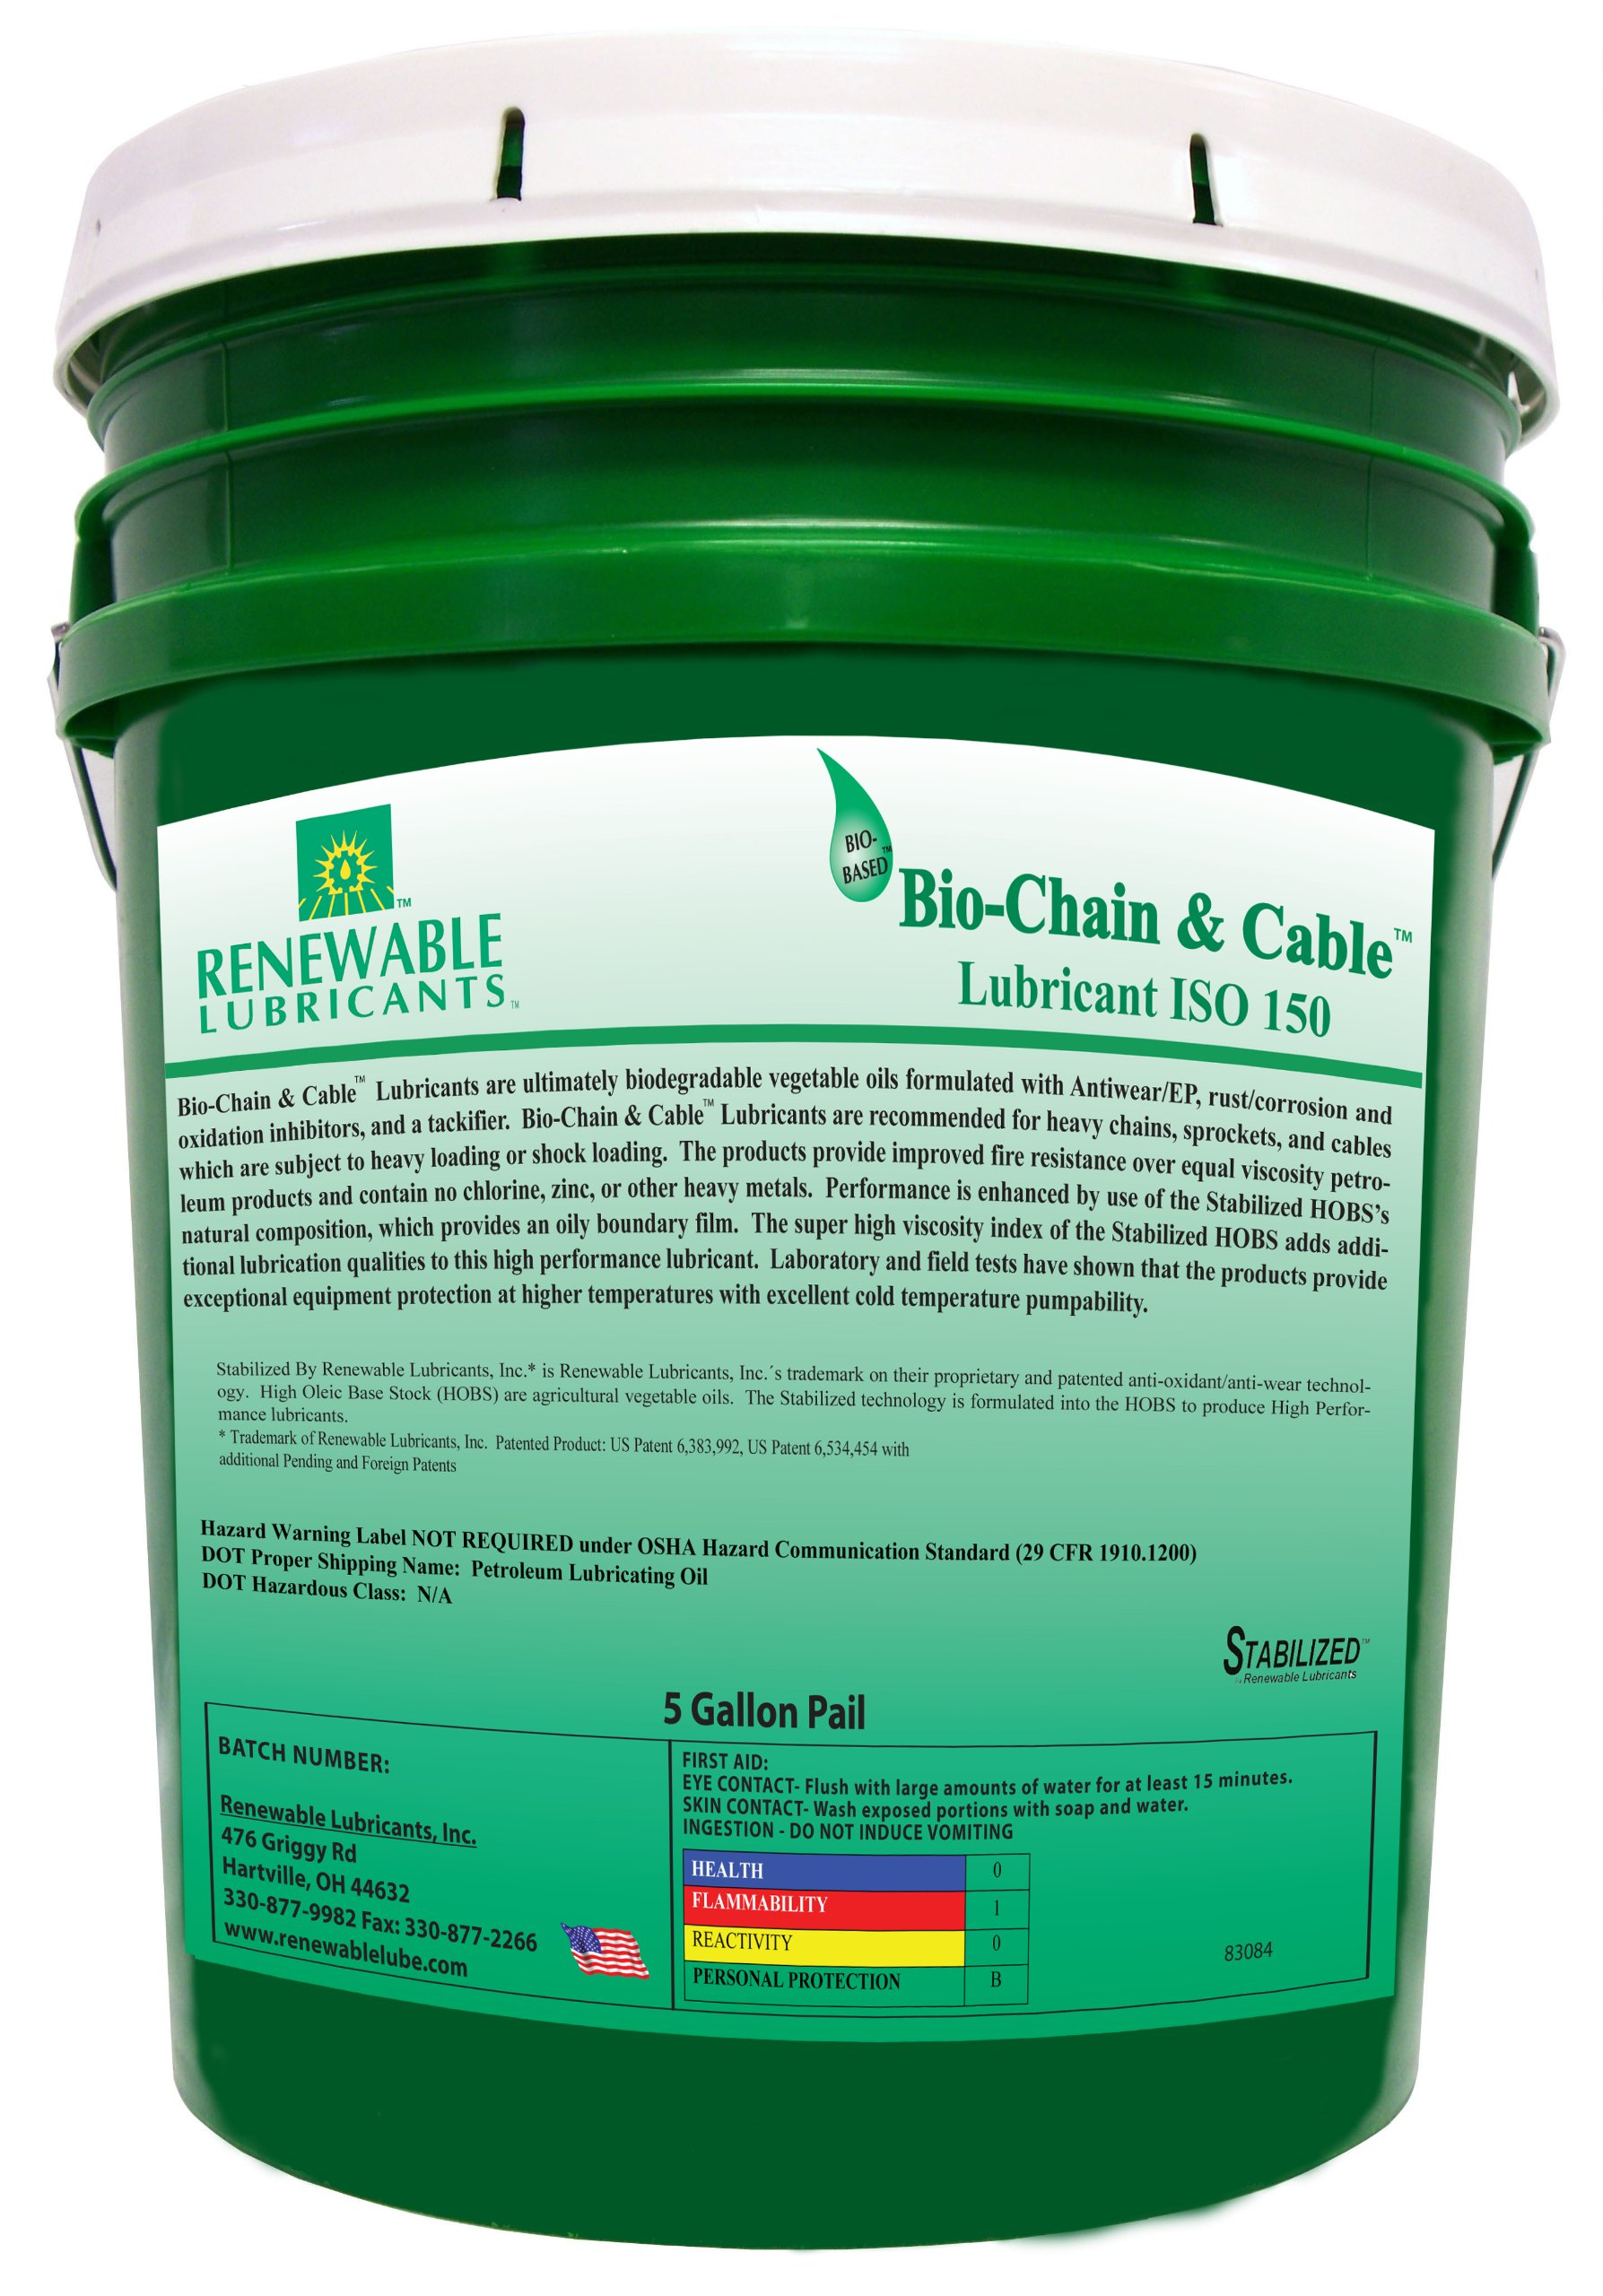 Renewable Lubricants Bio-Chain and Cable ISO 150 Lubricant Oil, 5 Gallon Pail by Renewable Lubricants